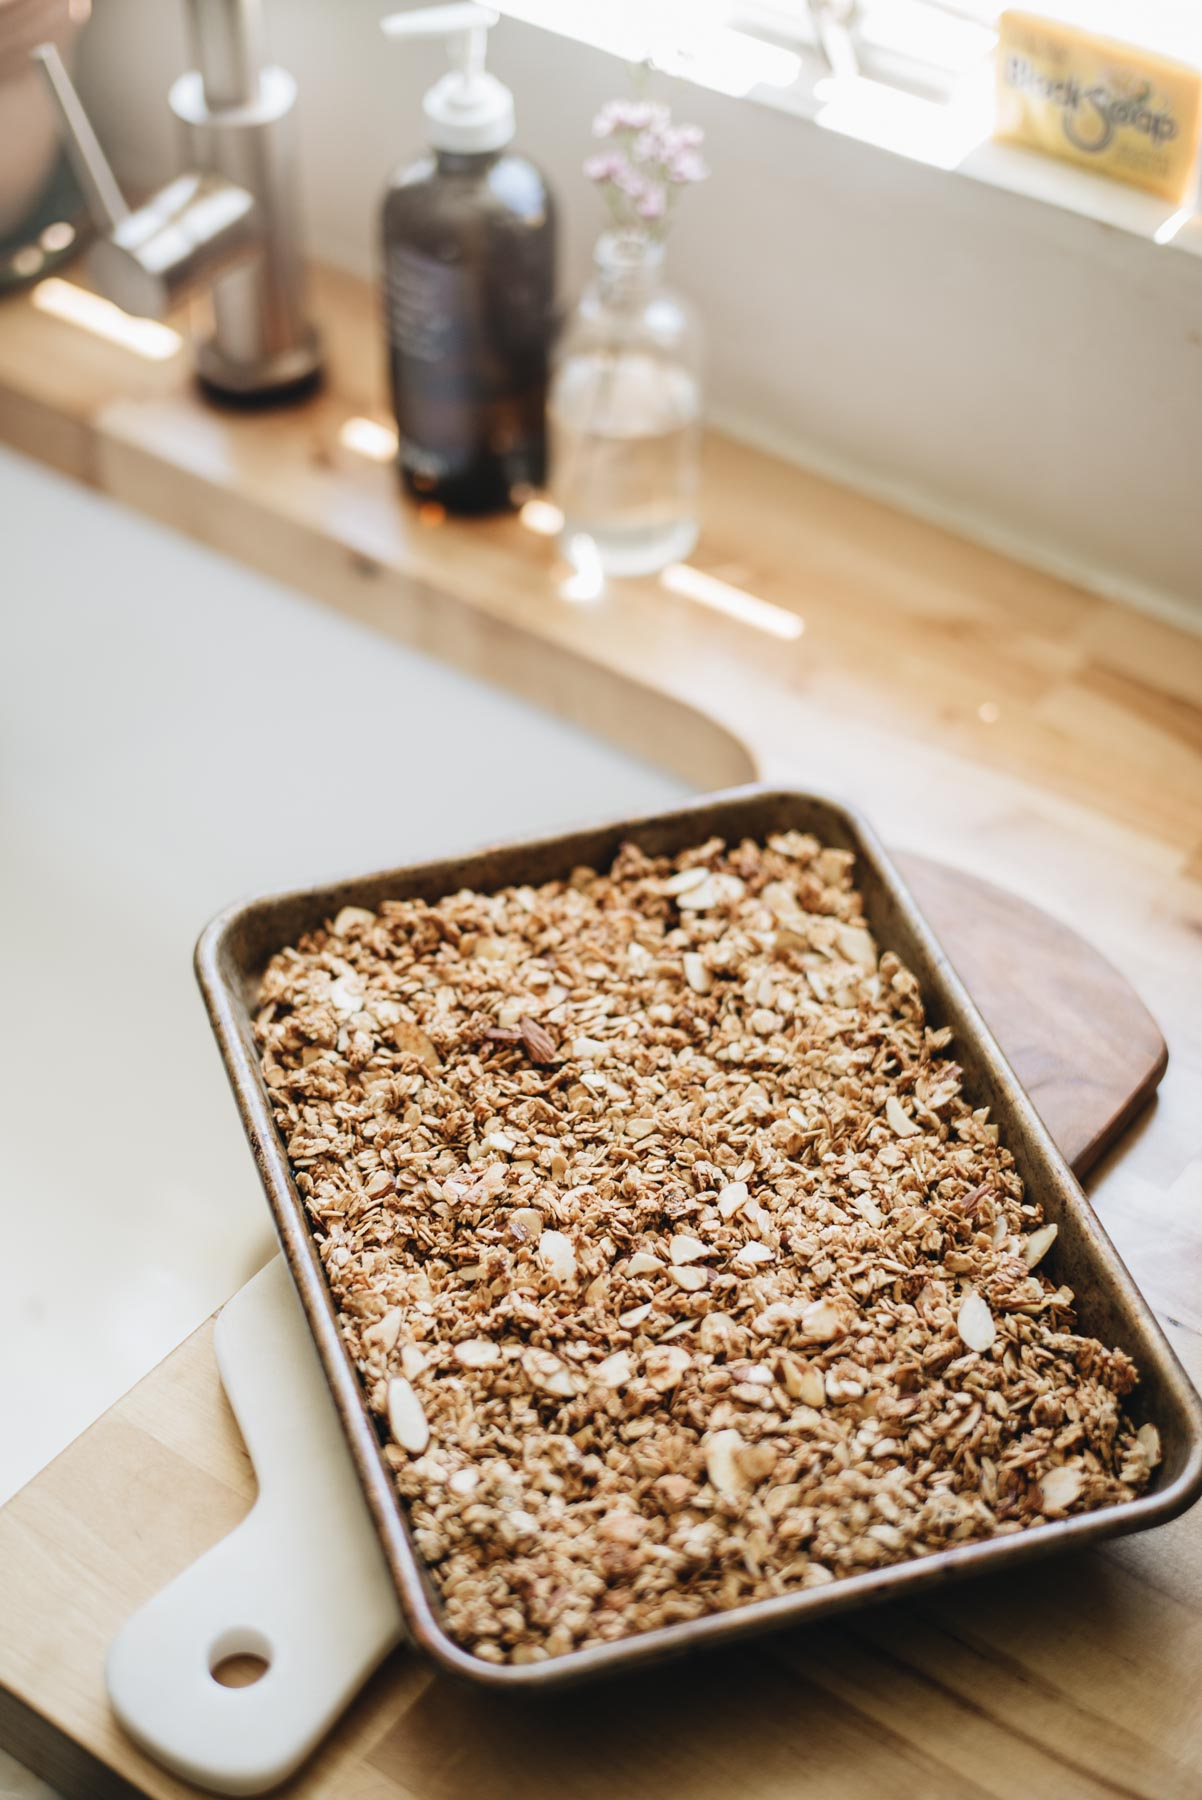 Jess Ann Kirby creates a homemade granola recipe that is customizable based on what's in the pantry